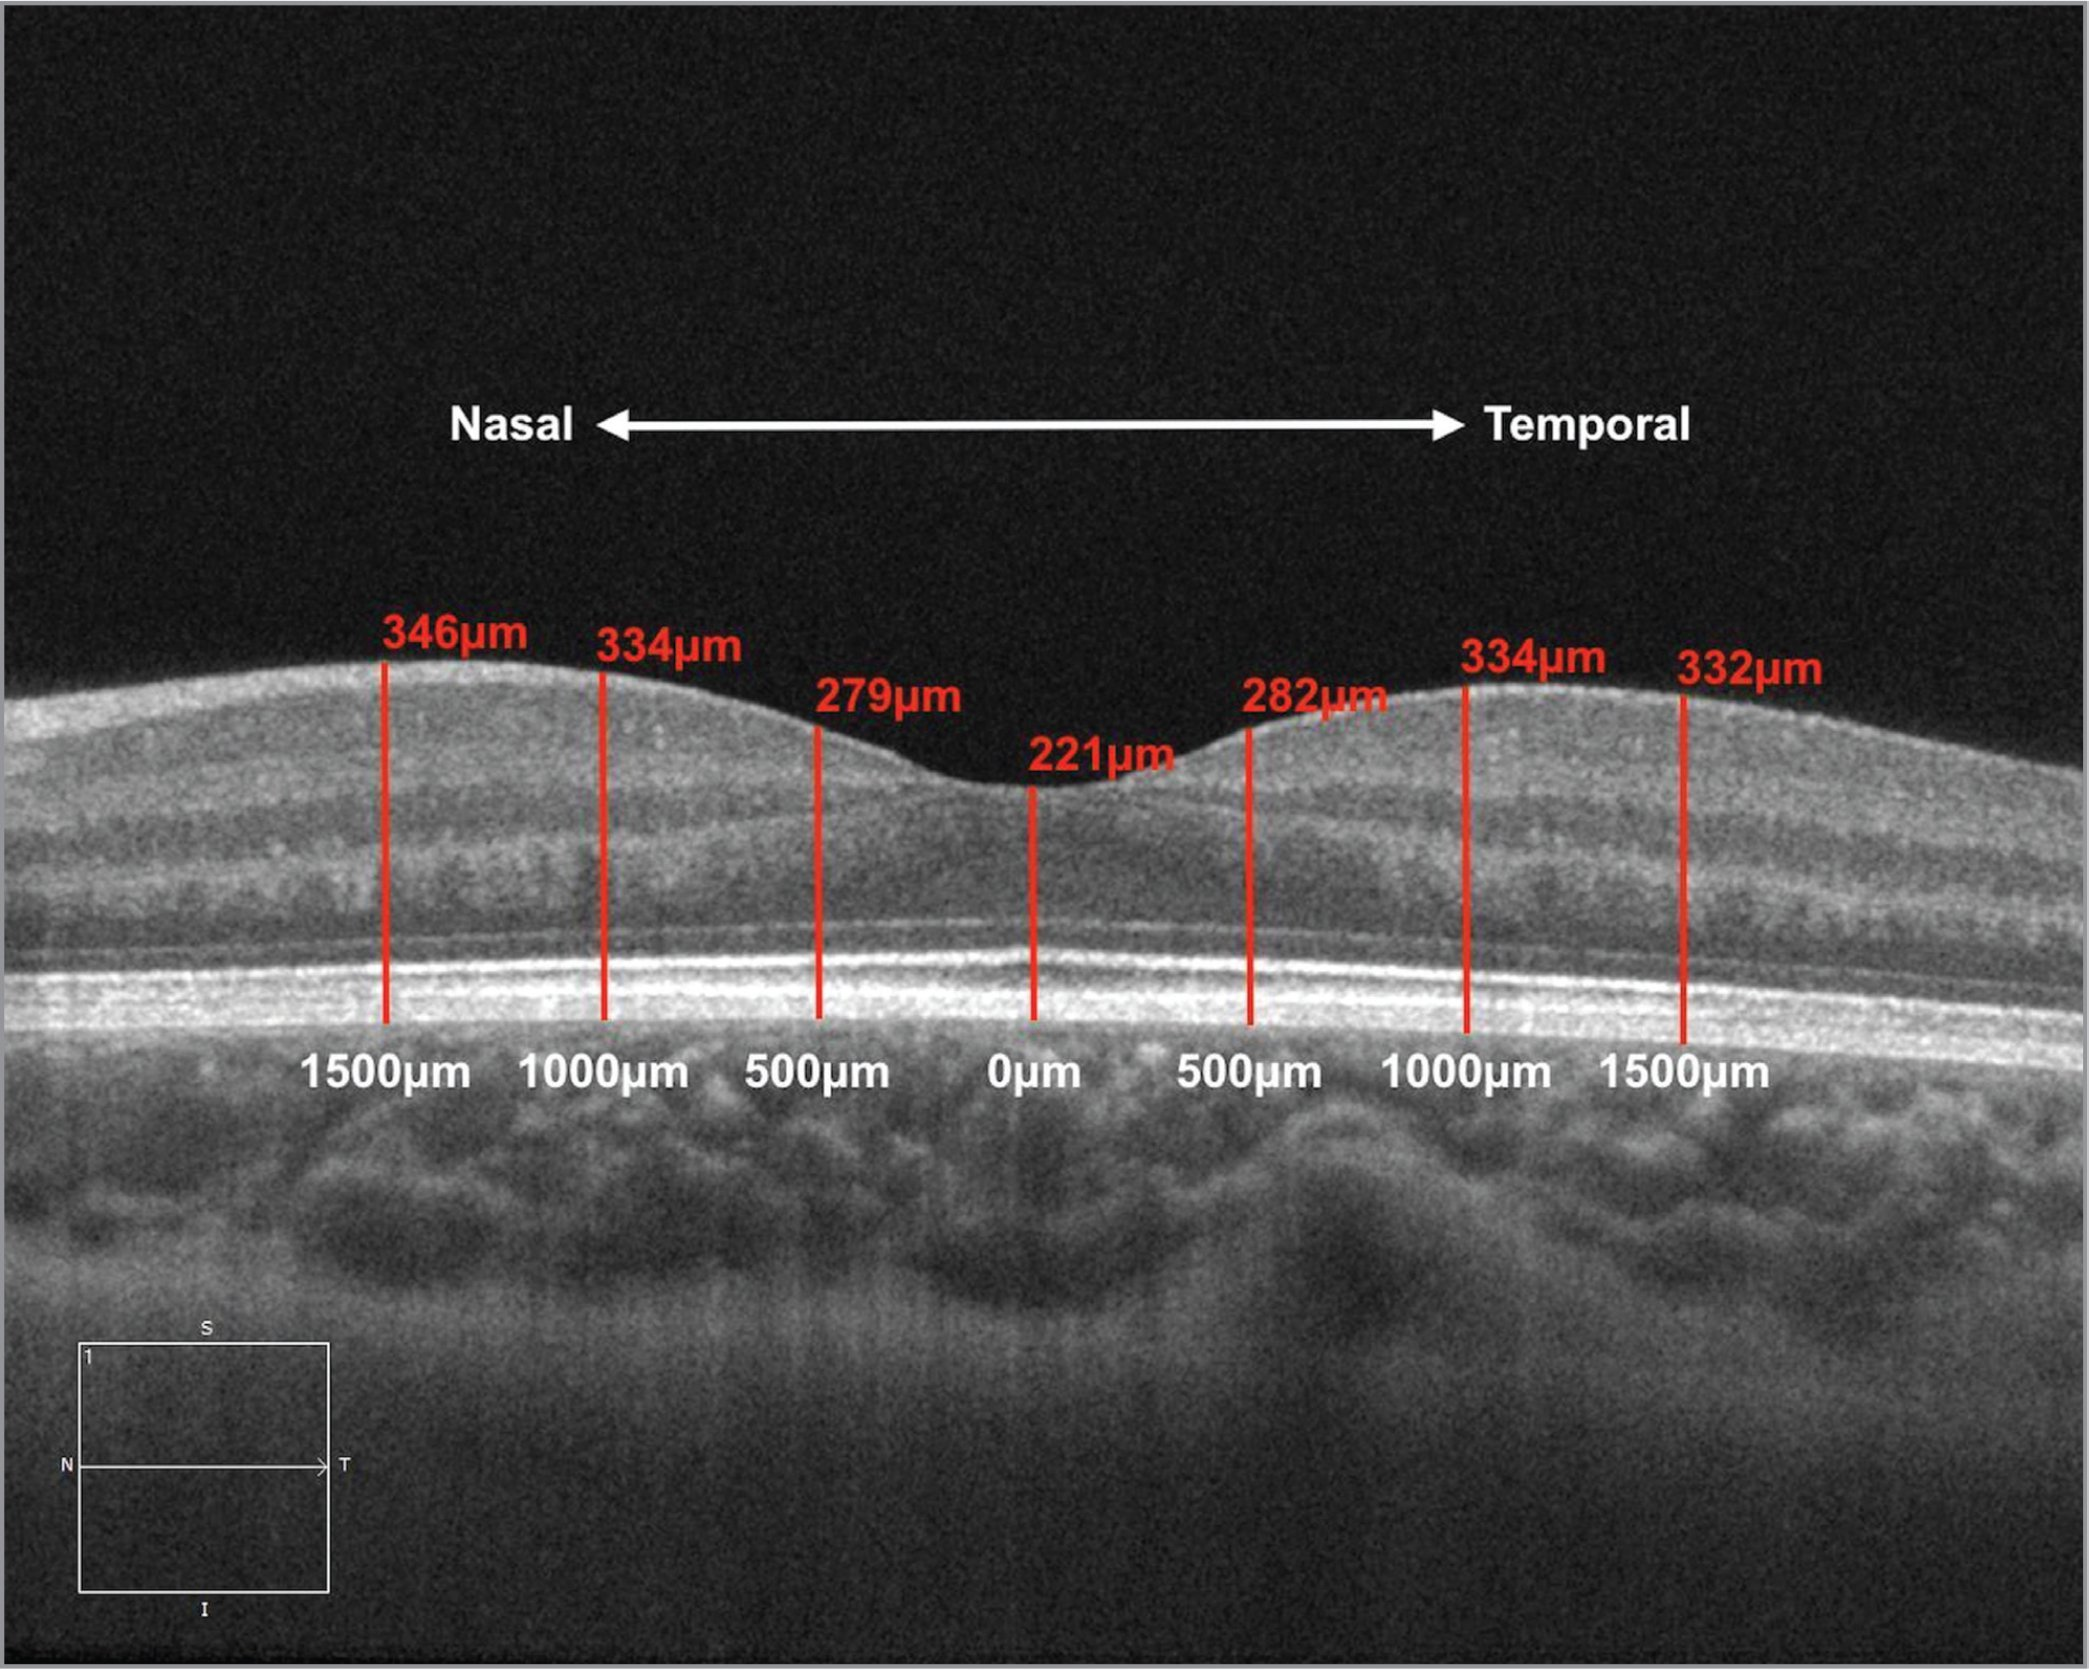 High-definition optical coherence tomography of the macula demonstrating the measurements (red) at the studied locations (white) on the horizontal scan